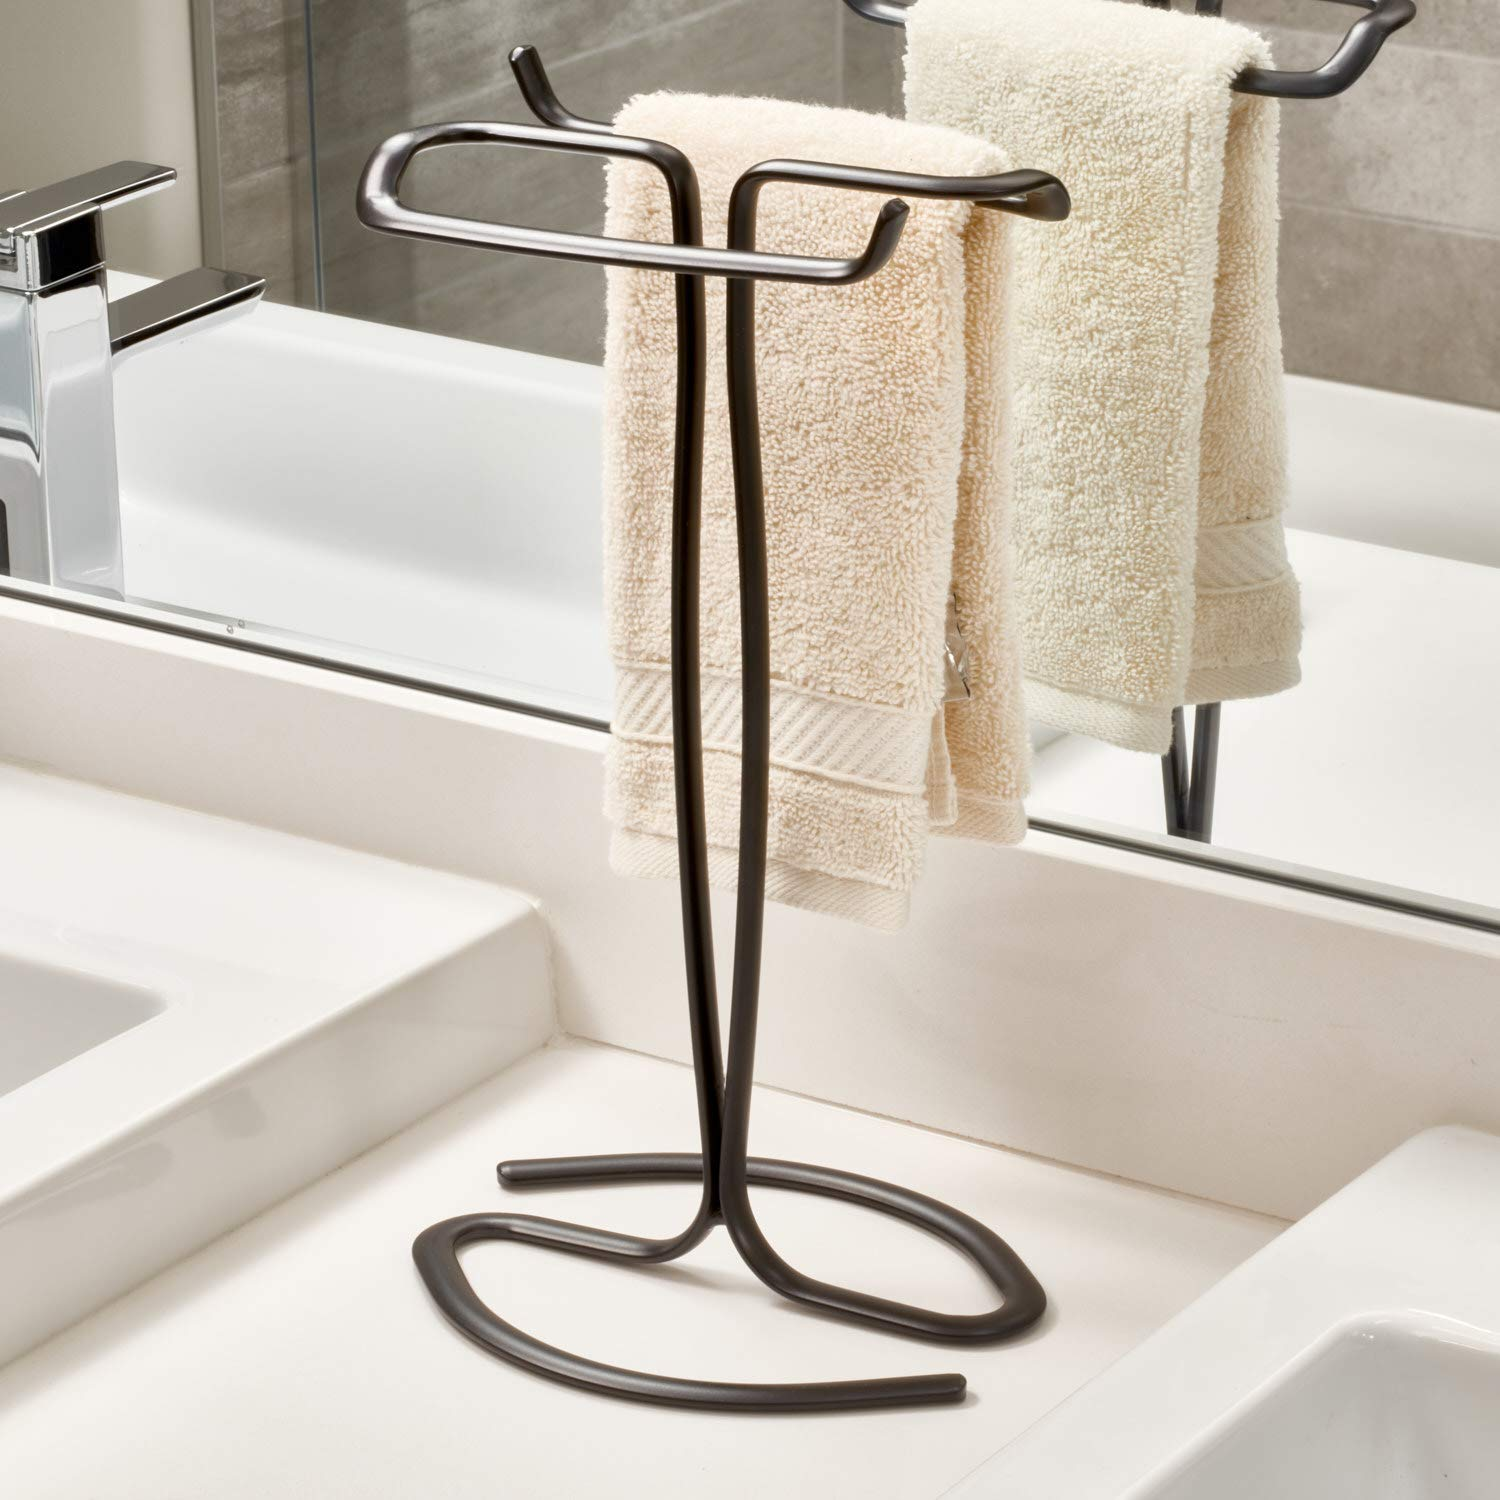 iDesign Axis Metal Free-Standing Hand Towel Drying Rack